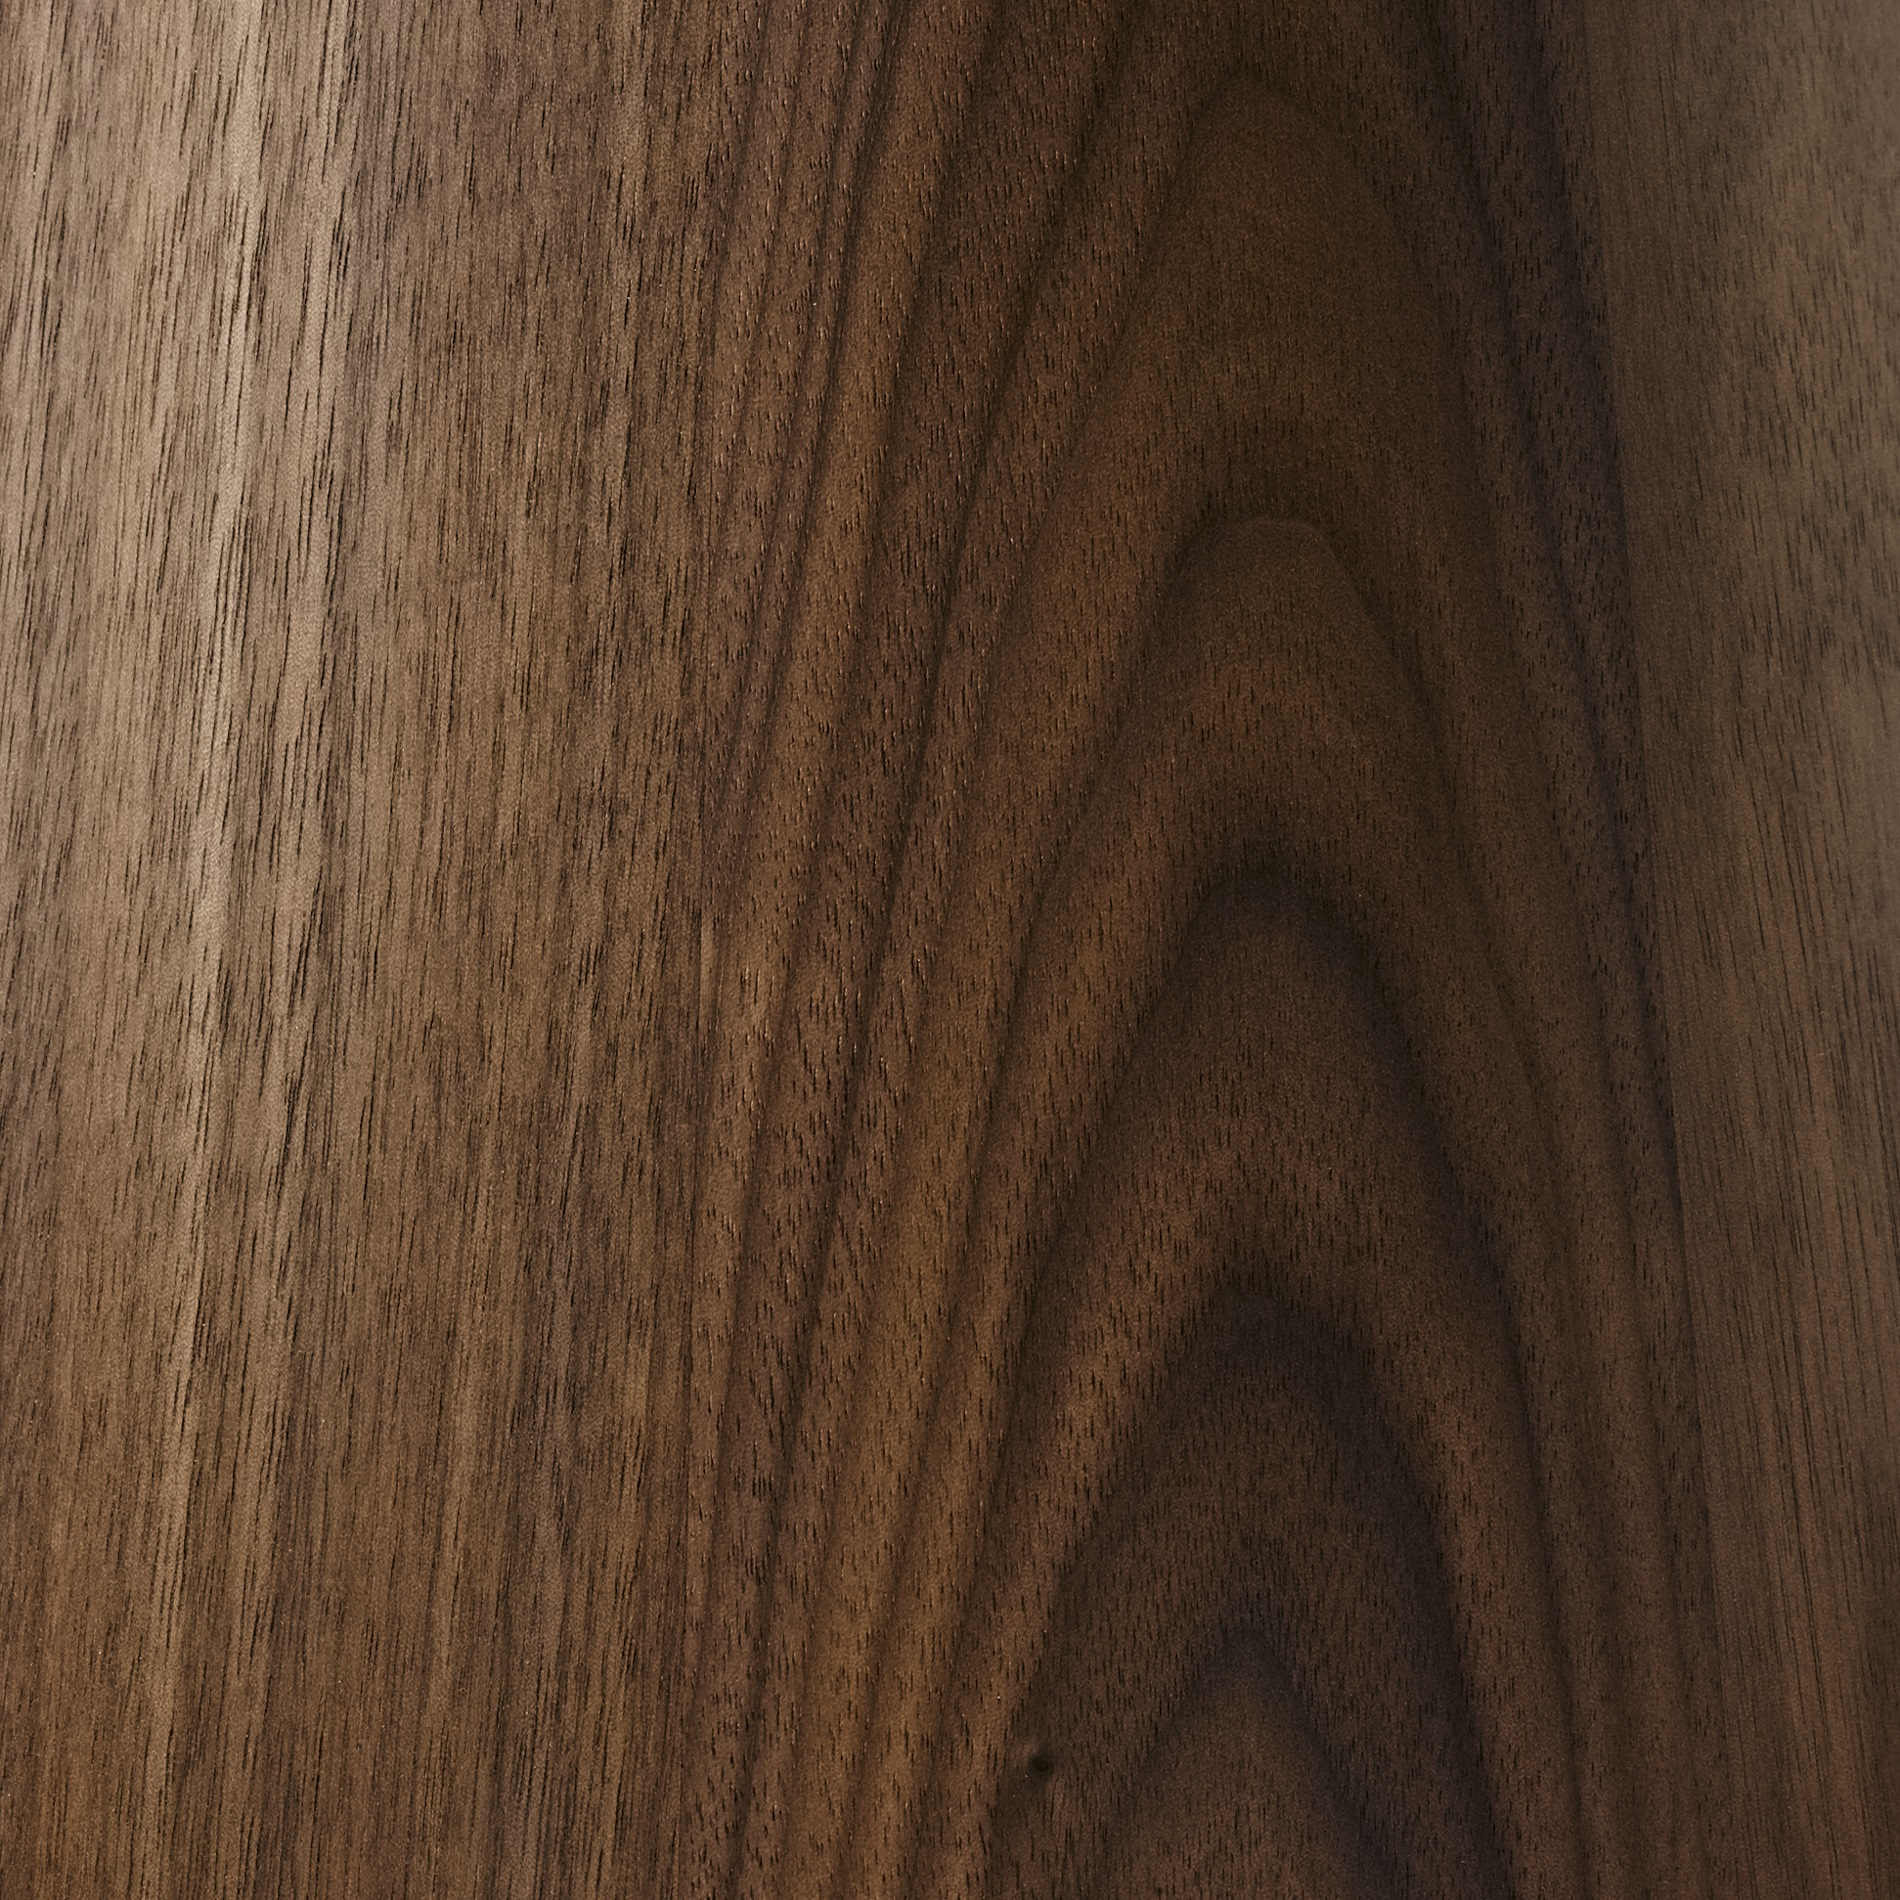 OILED WALNUT - Natural and finished with a clear microporous hard wax / oil